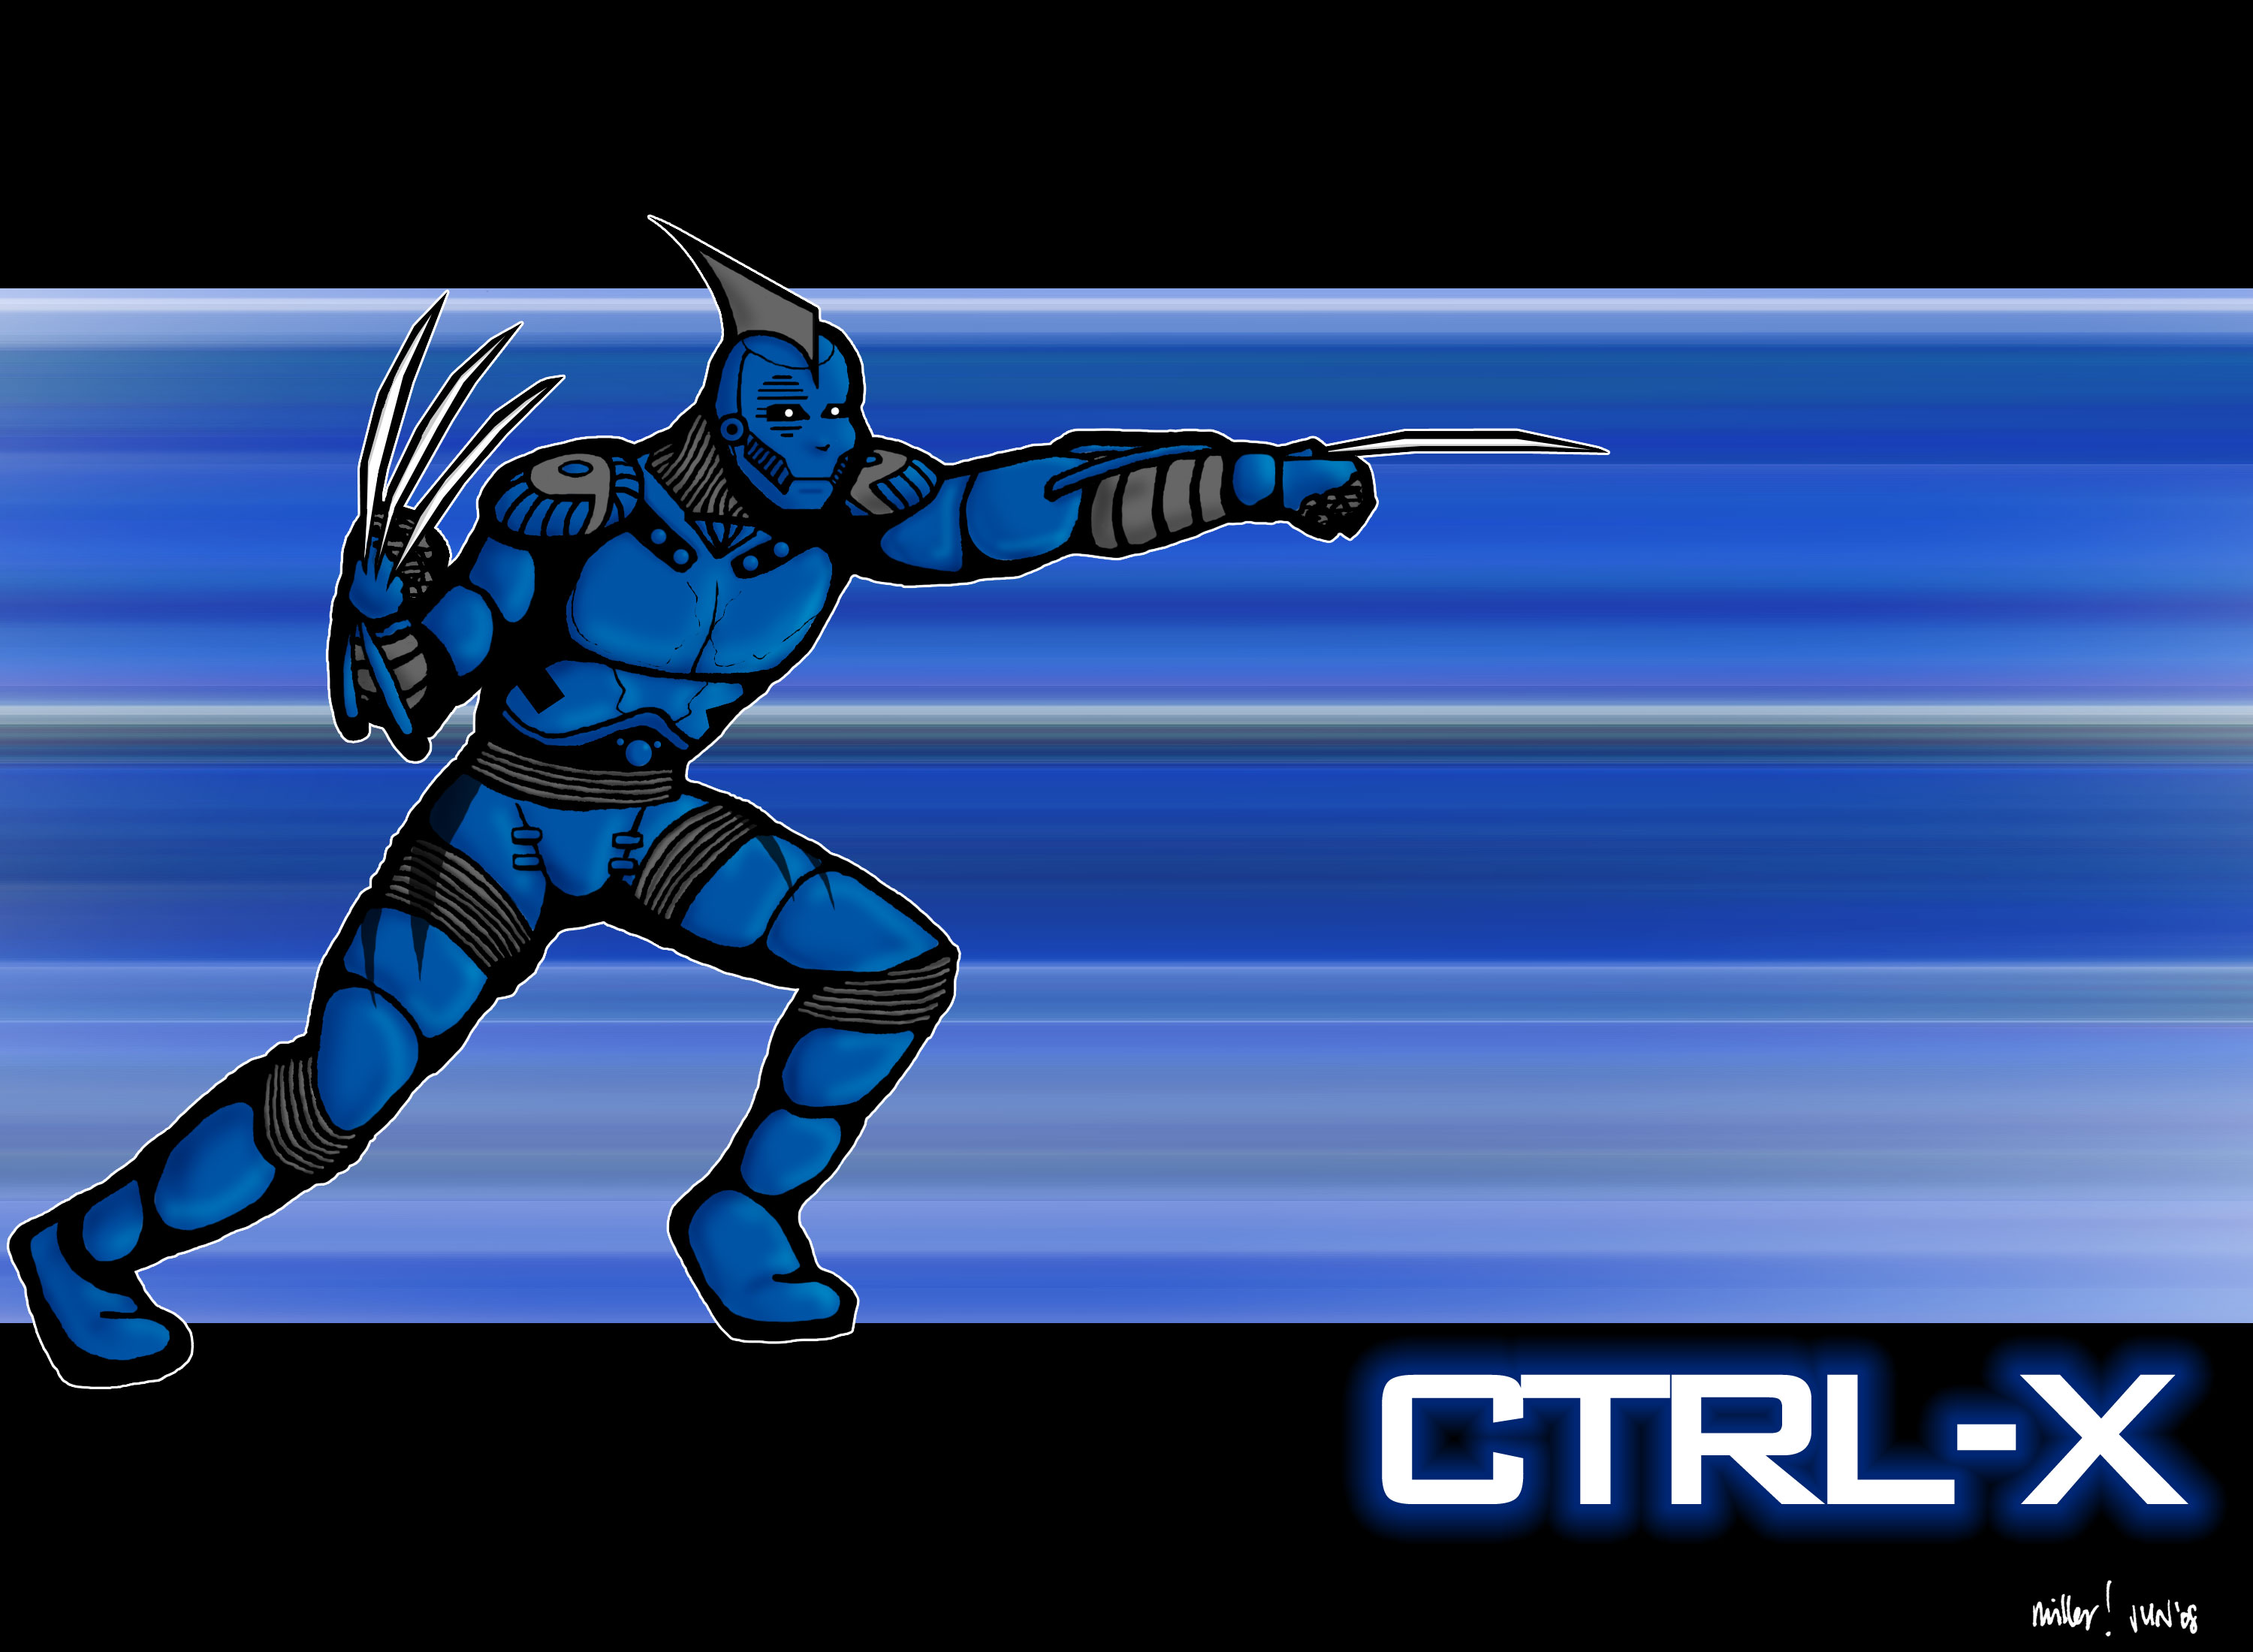 Ctrl-X advancing with claws extended.